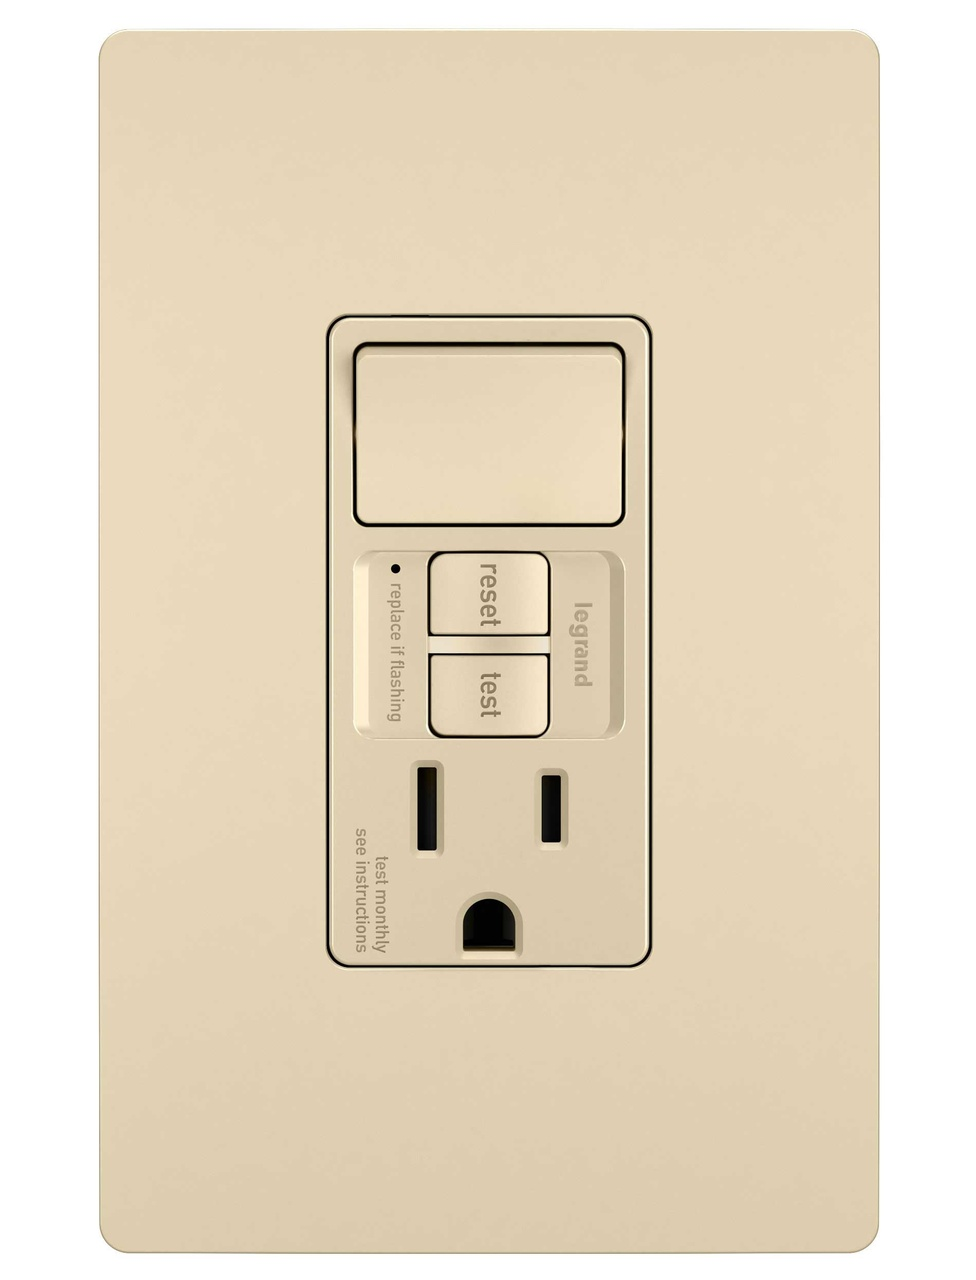 10-TAMPER-RESISTANT 15A OUTLET BRANCH CIRCUIT AFCI RECEPTACLE IVORY pass seymour